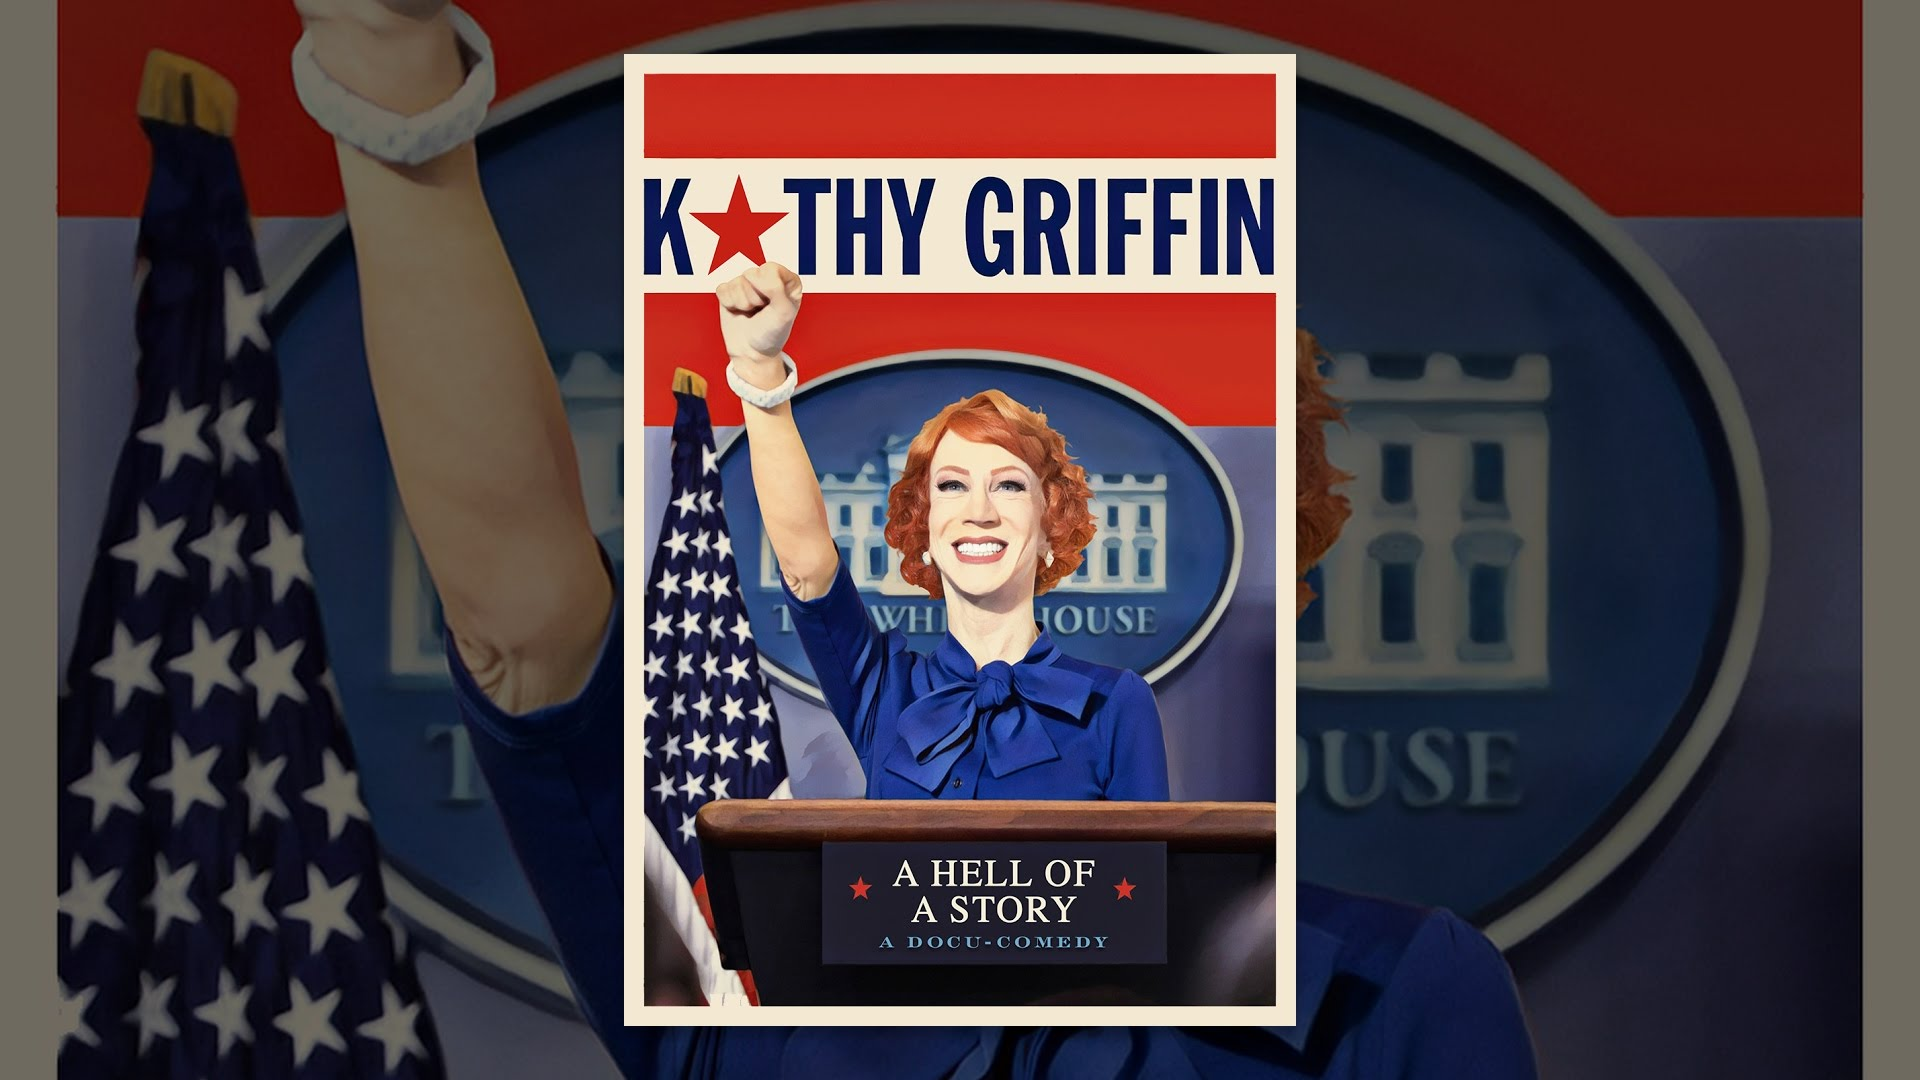 [VIDEO] - Kathy Griffin: A Hell of a Story 2